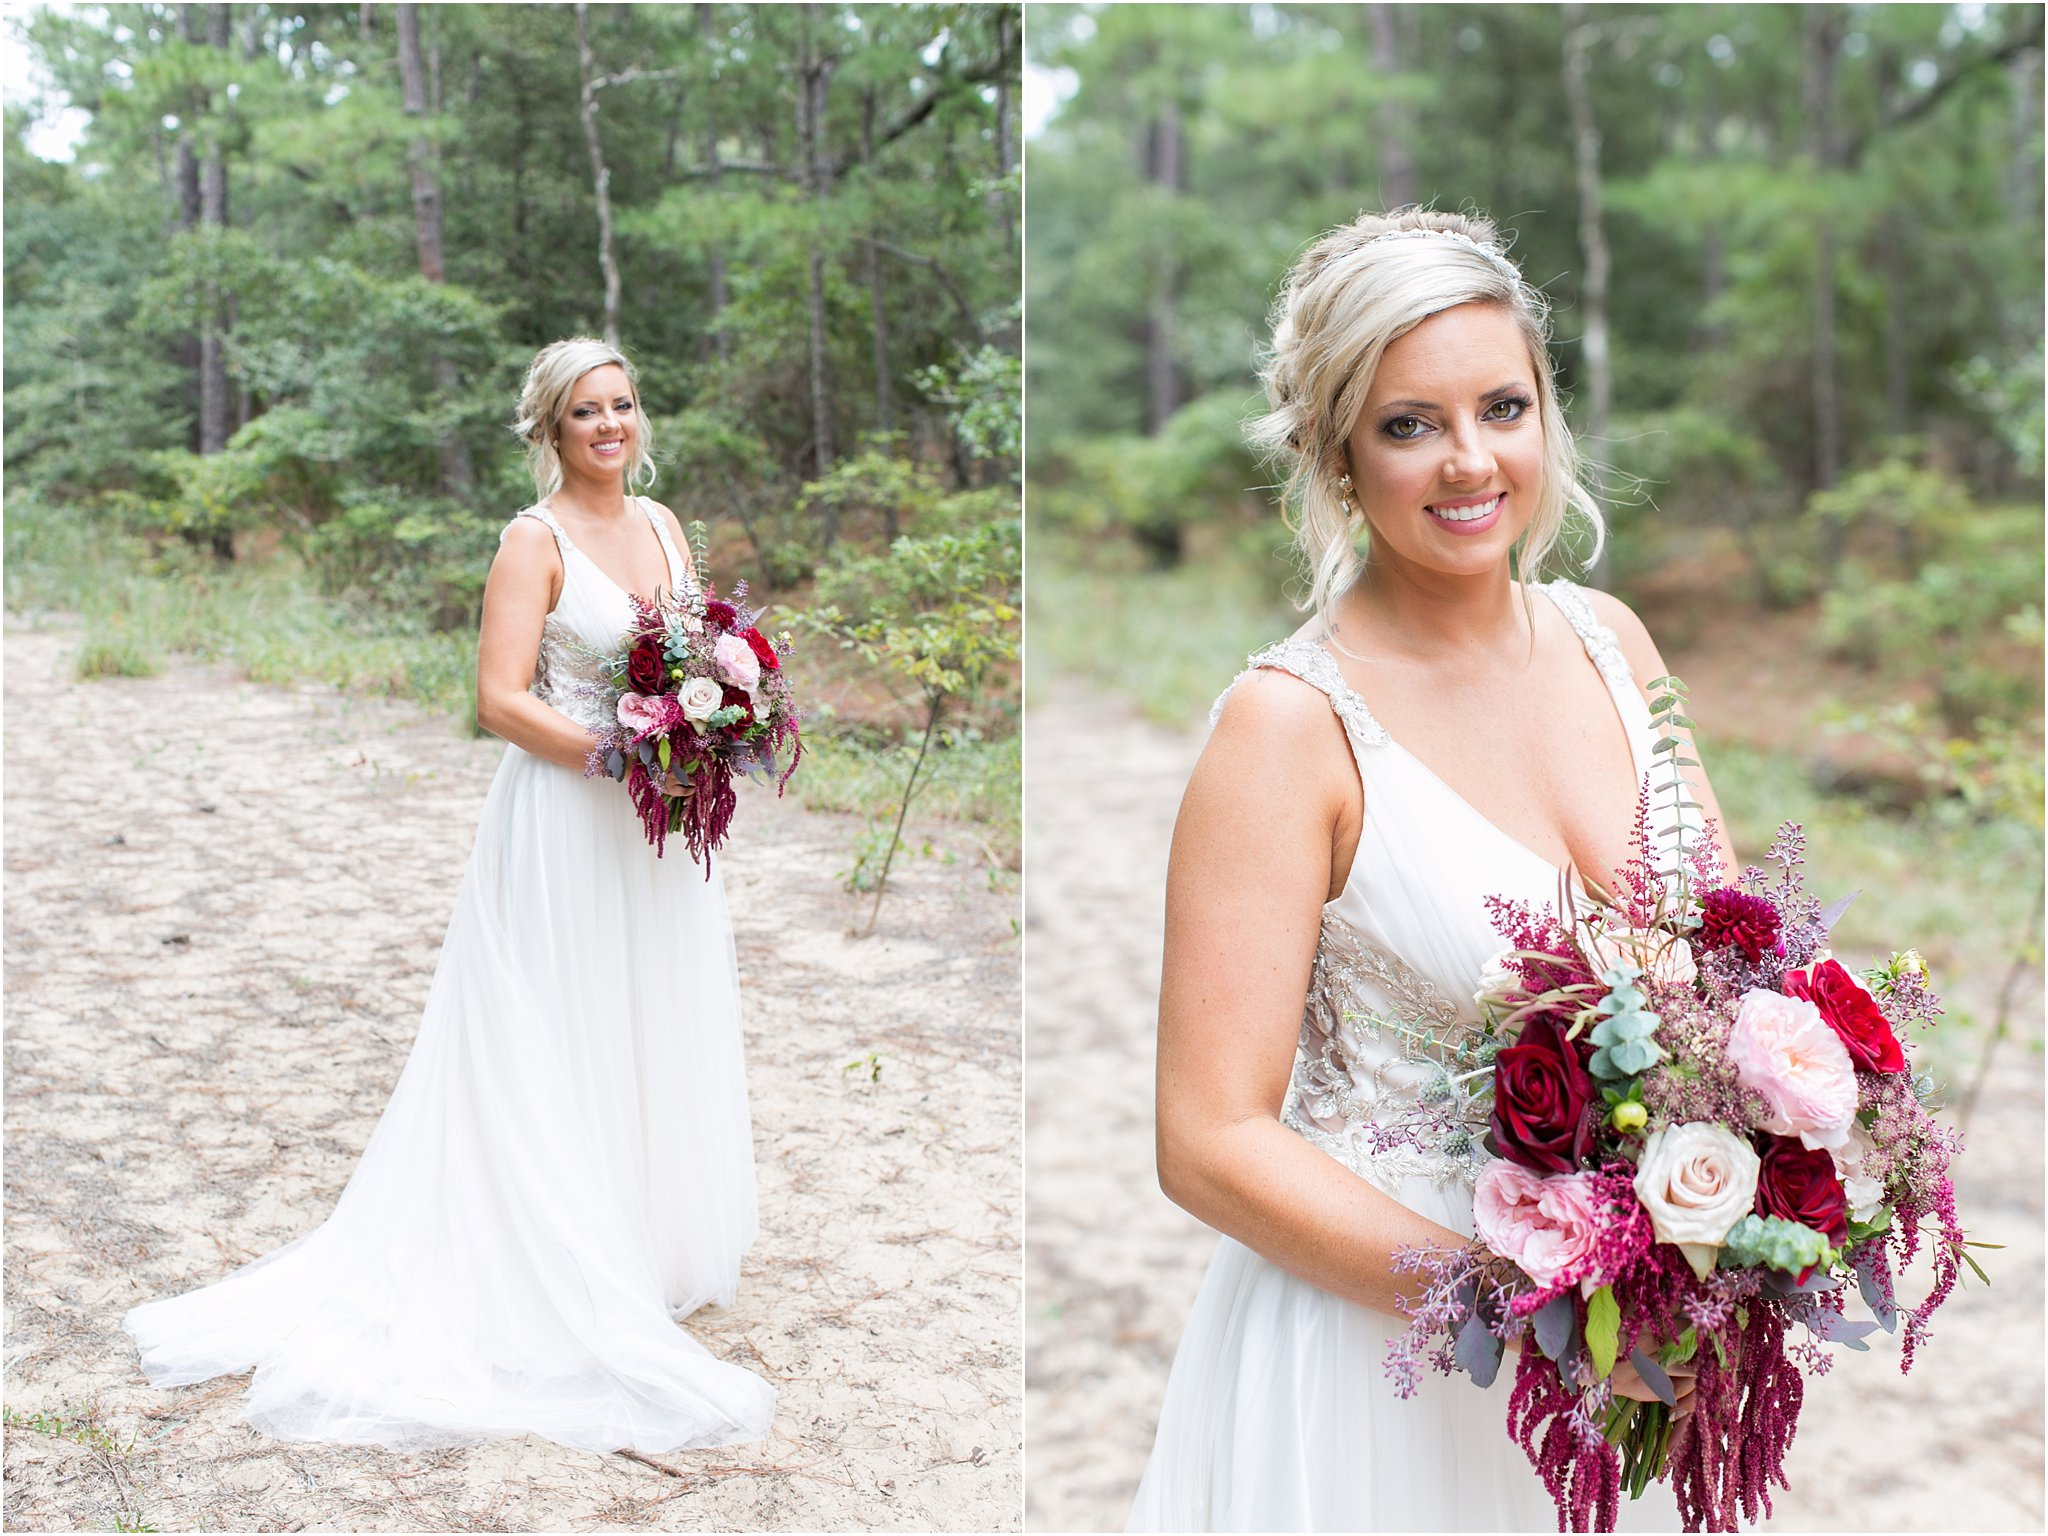 jessica_ryan_photography_virginia_wedding_photographer_candid_authentic_hampton_roads_wedding_photography_marina_shores_yacht_club_first_landing_state_park_woodland_theme_garden_3292